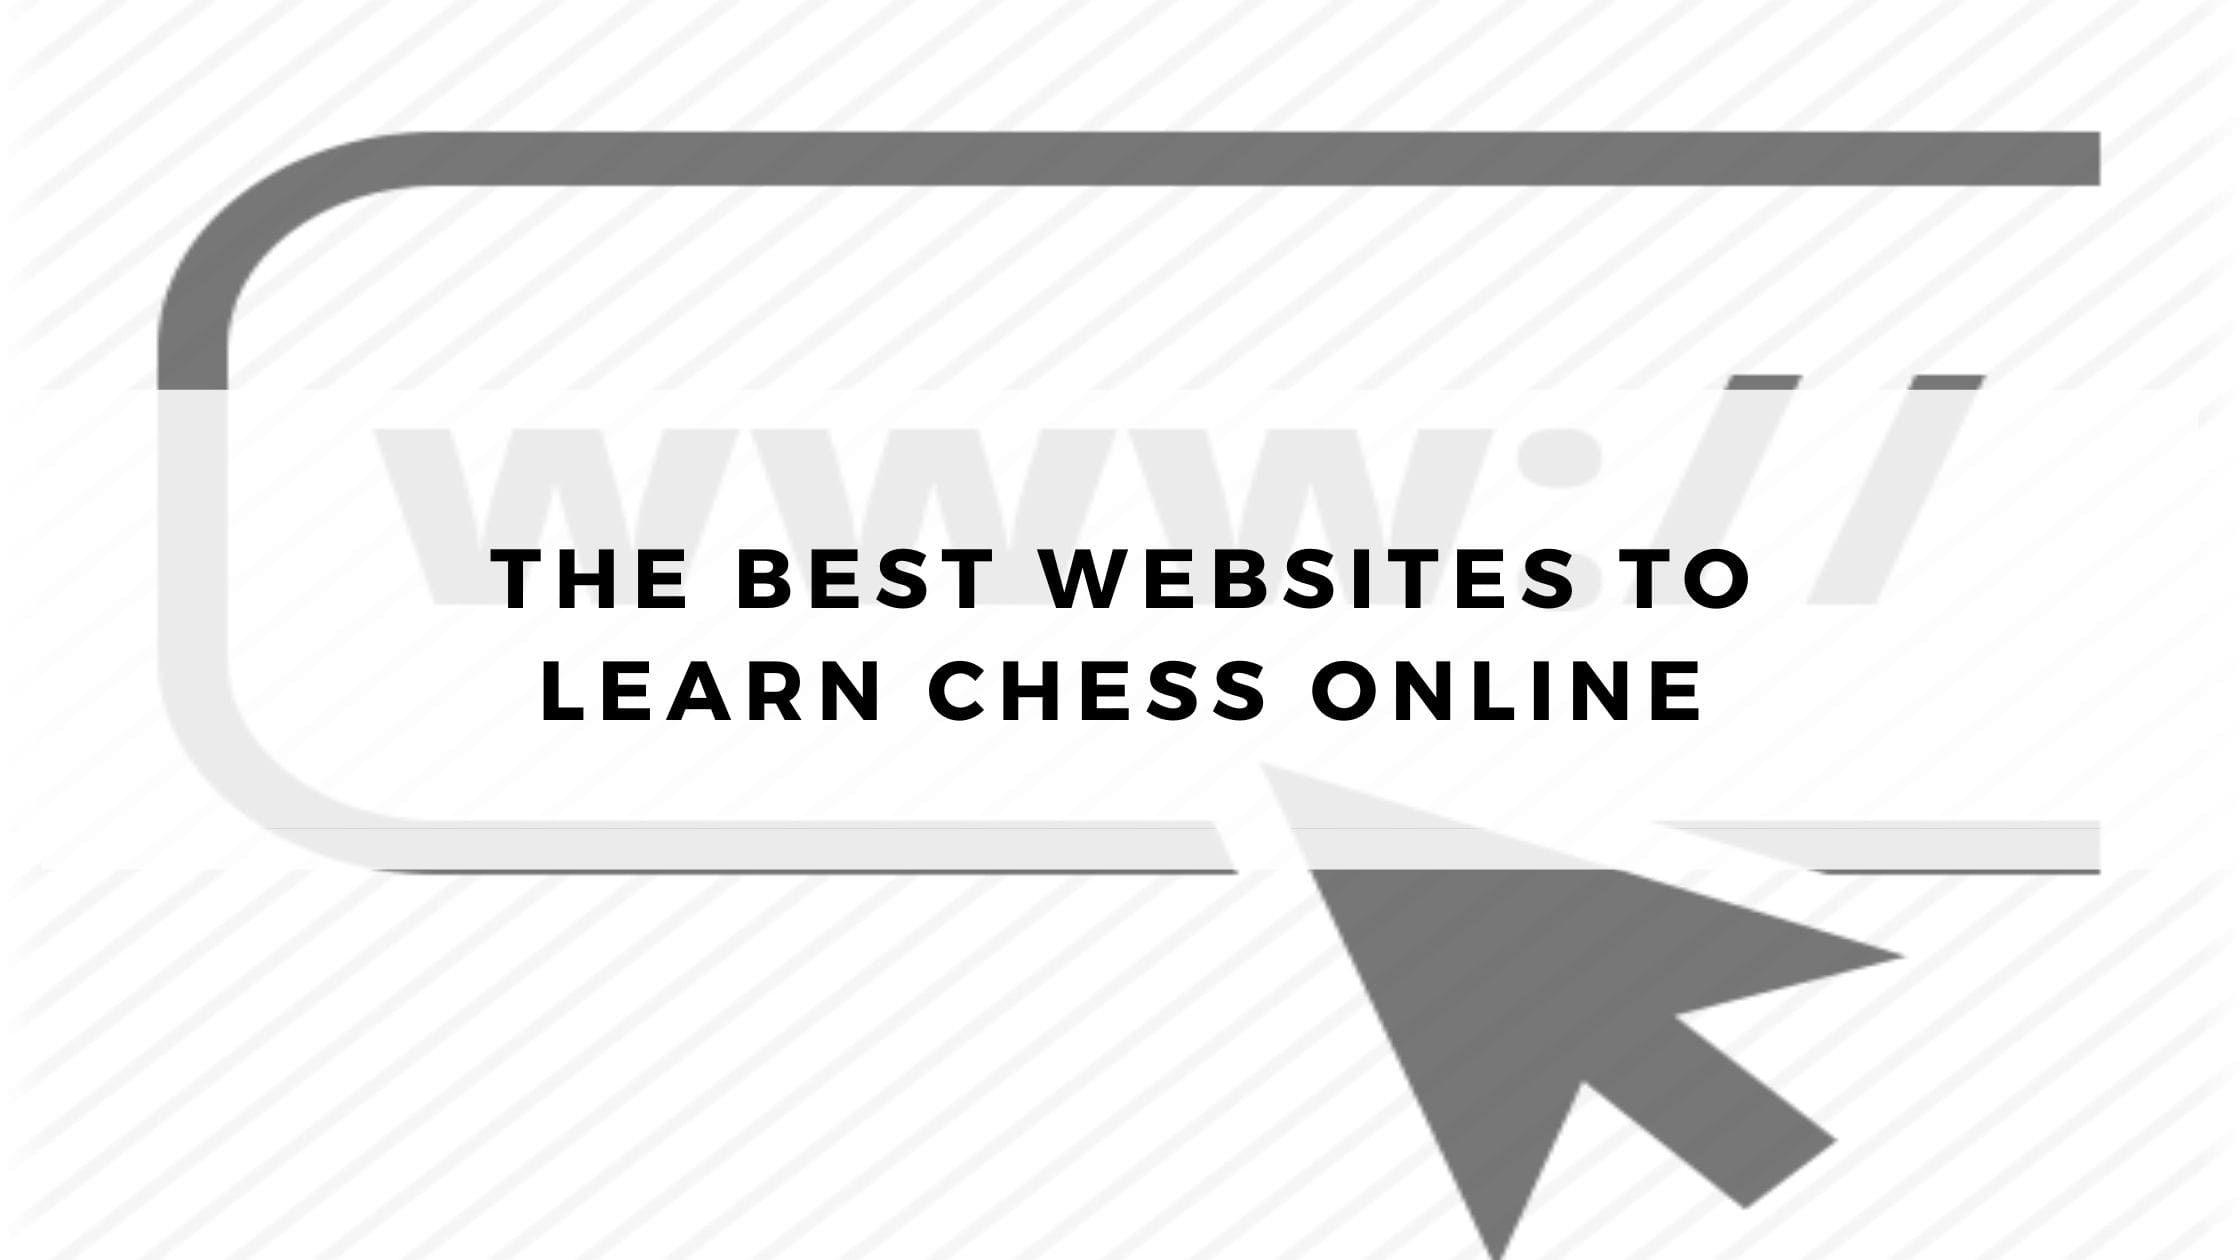 The Best Websites to Learn Chess Online